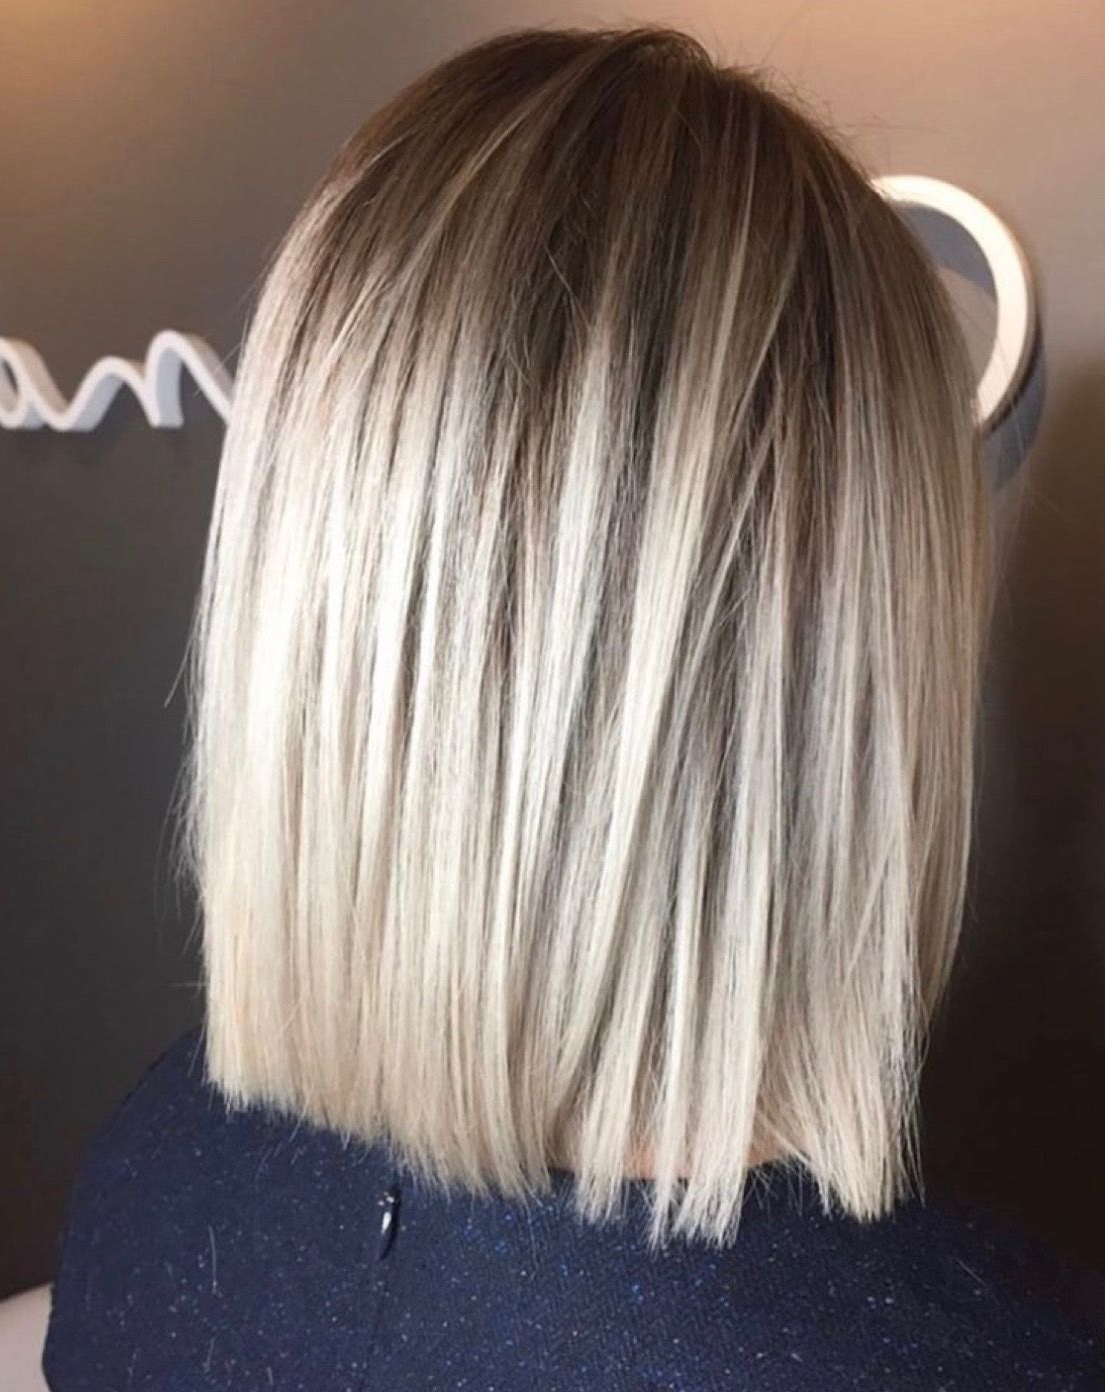 Love This Blunt One Length For The Perfect, Most Flattering Short Inside One Length Balayage Bob Hairstyles With Bangs (Gallery 3 of 20)